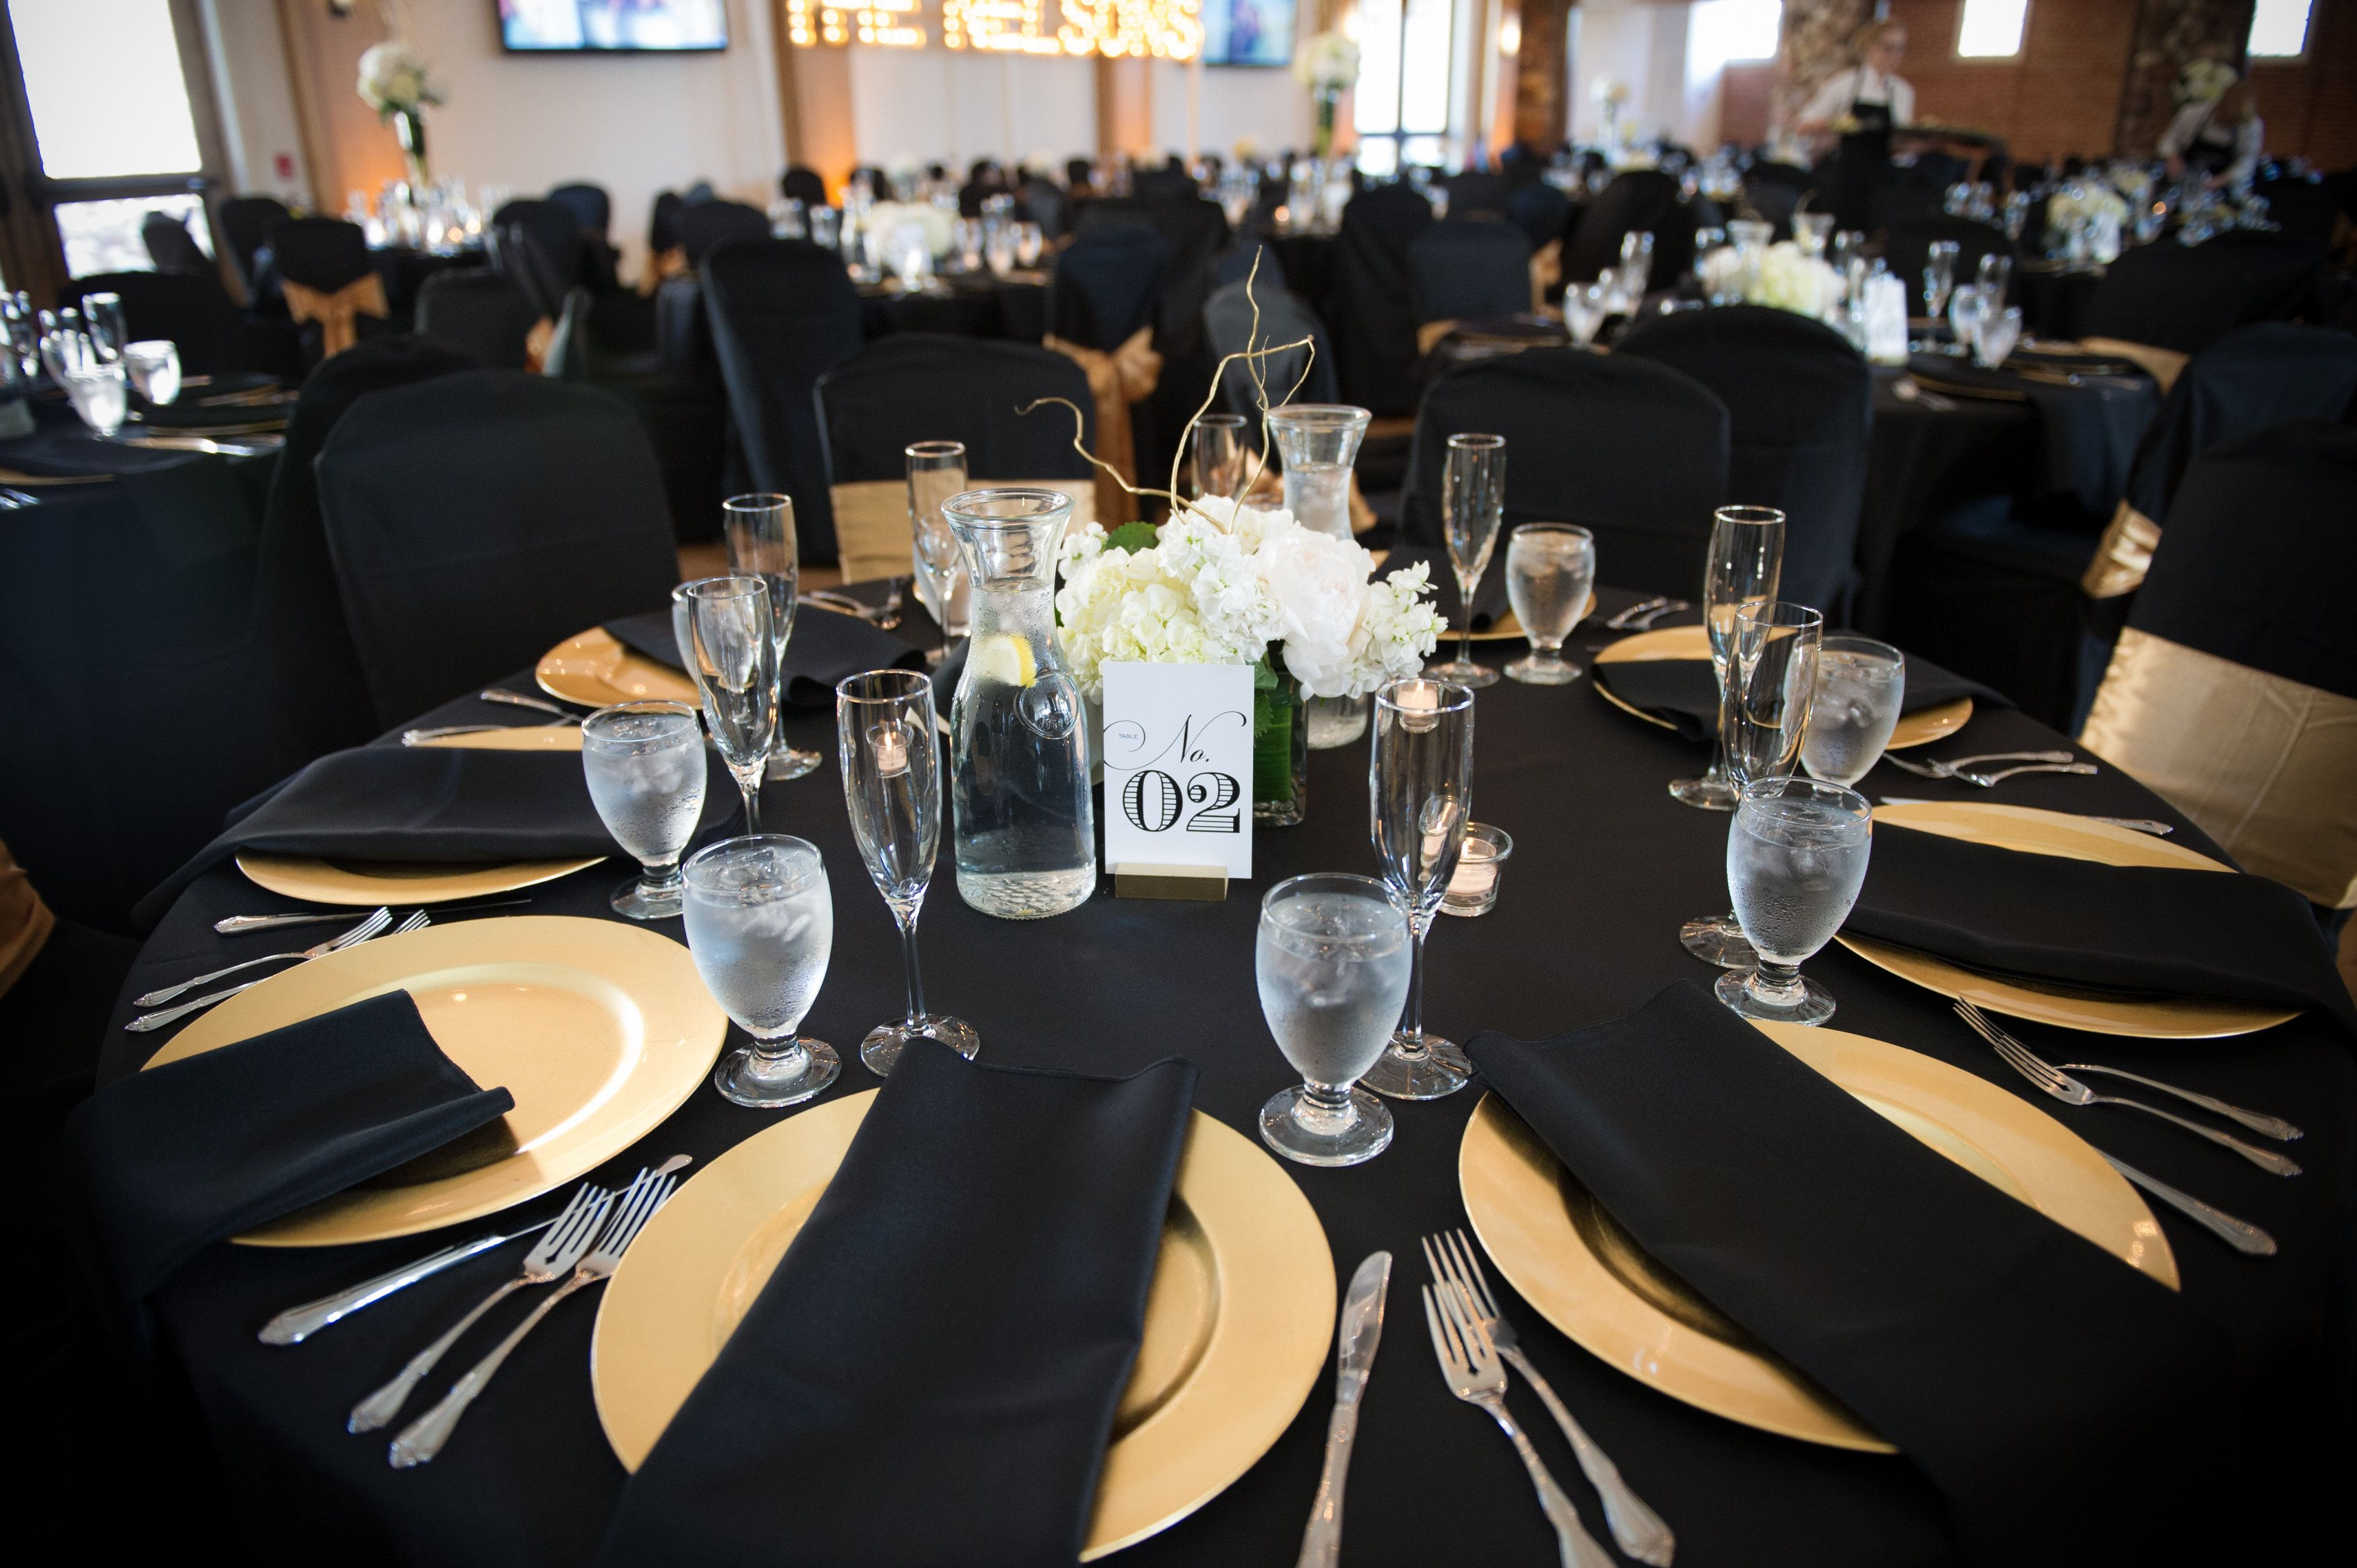 Wedding decorations yellow and gray  Black and Gold wedding Photo via carly k k Pippin